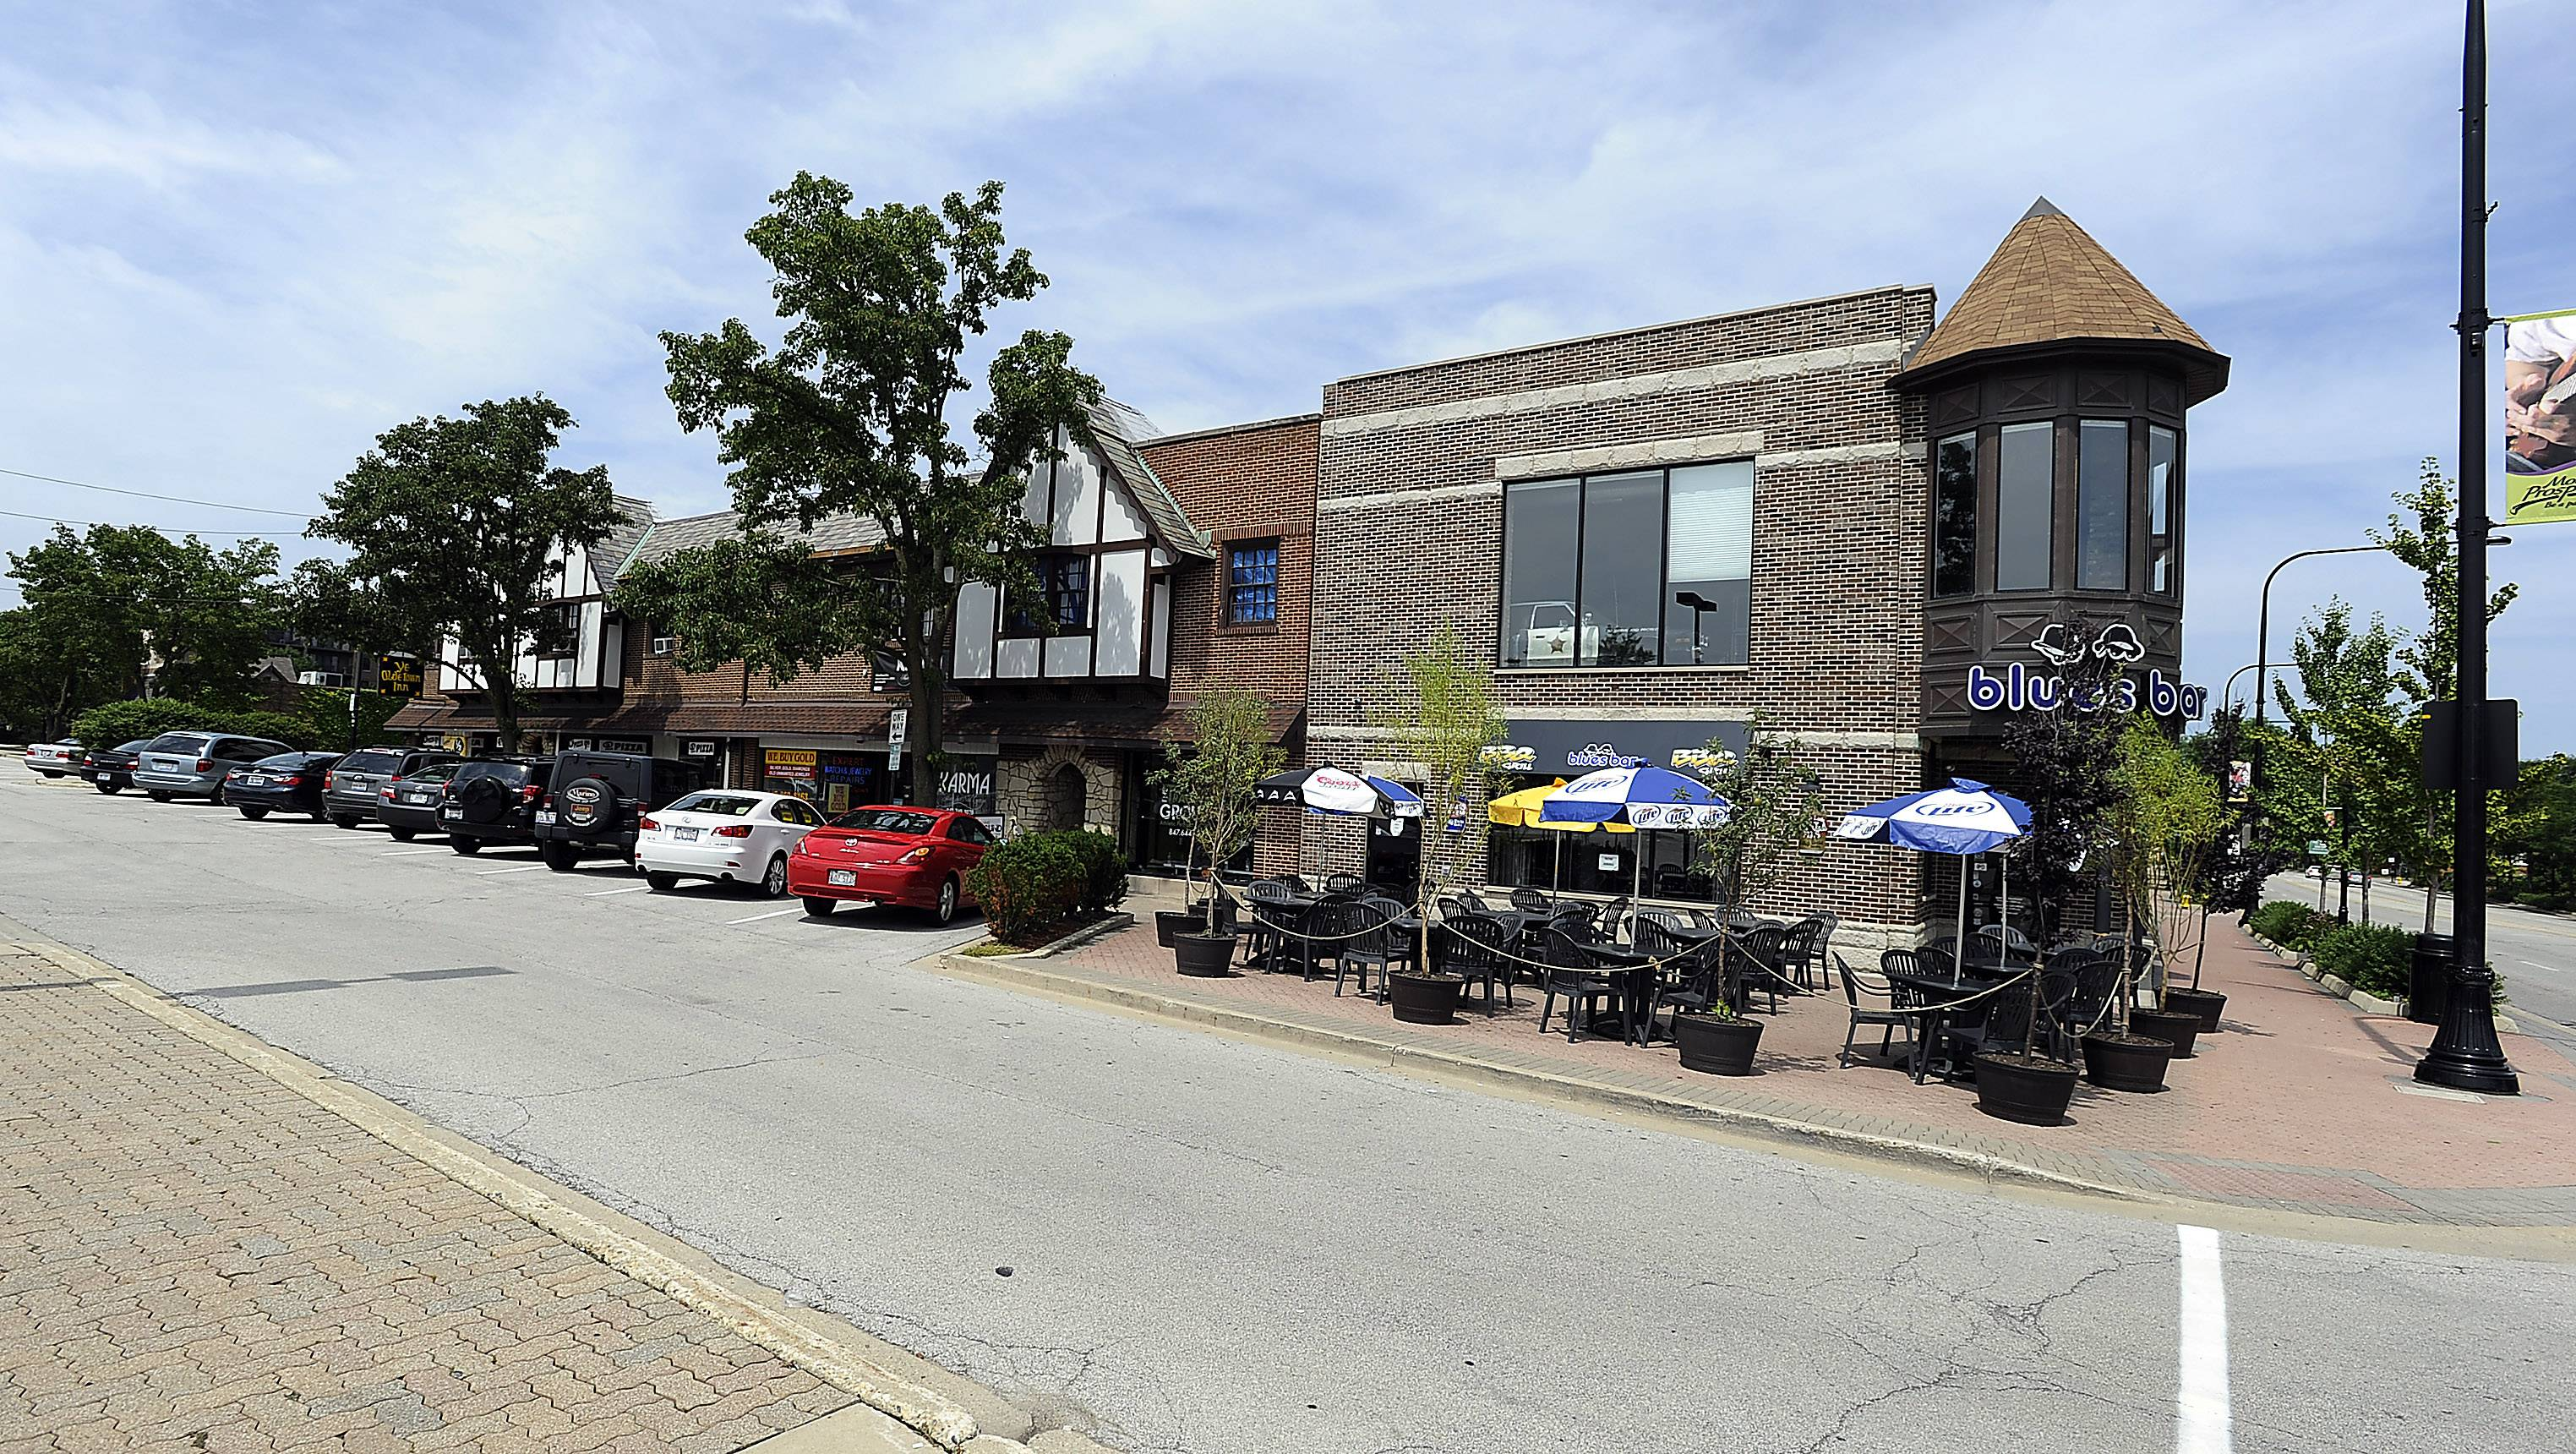 A row of businesses on Busse Avenue in Mount Prospect includes the Blues Bar and Ye Olde Town Inn.